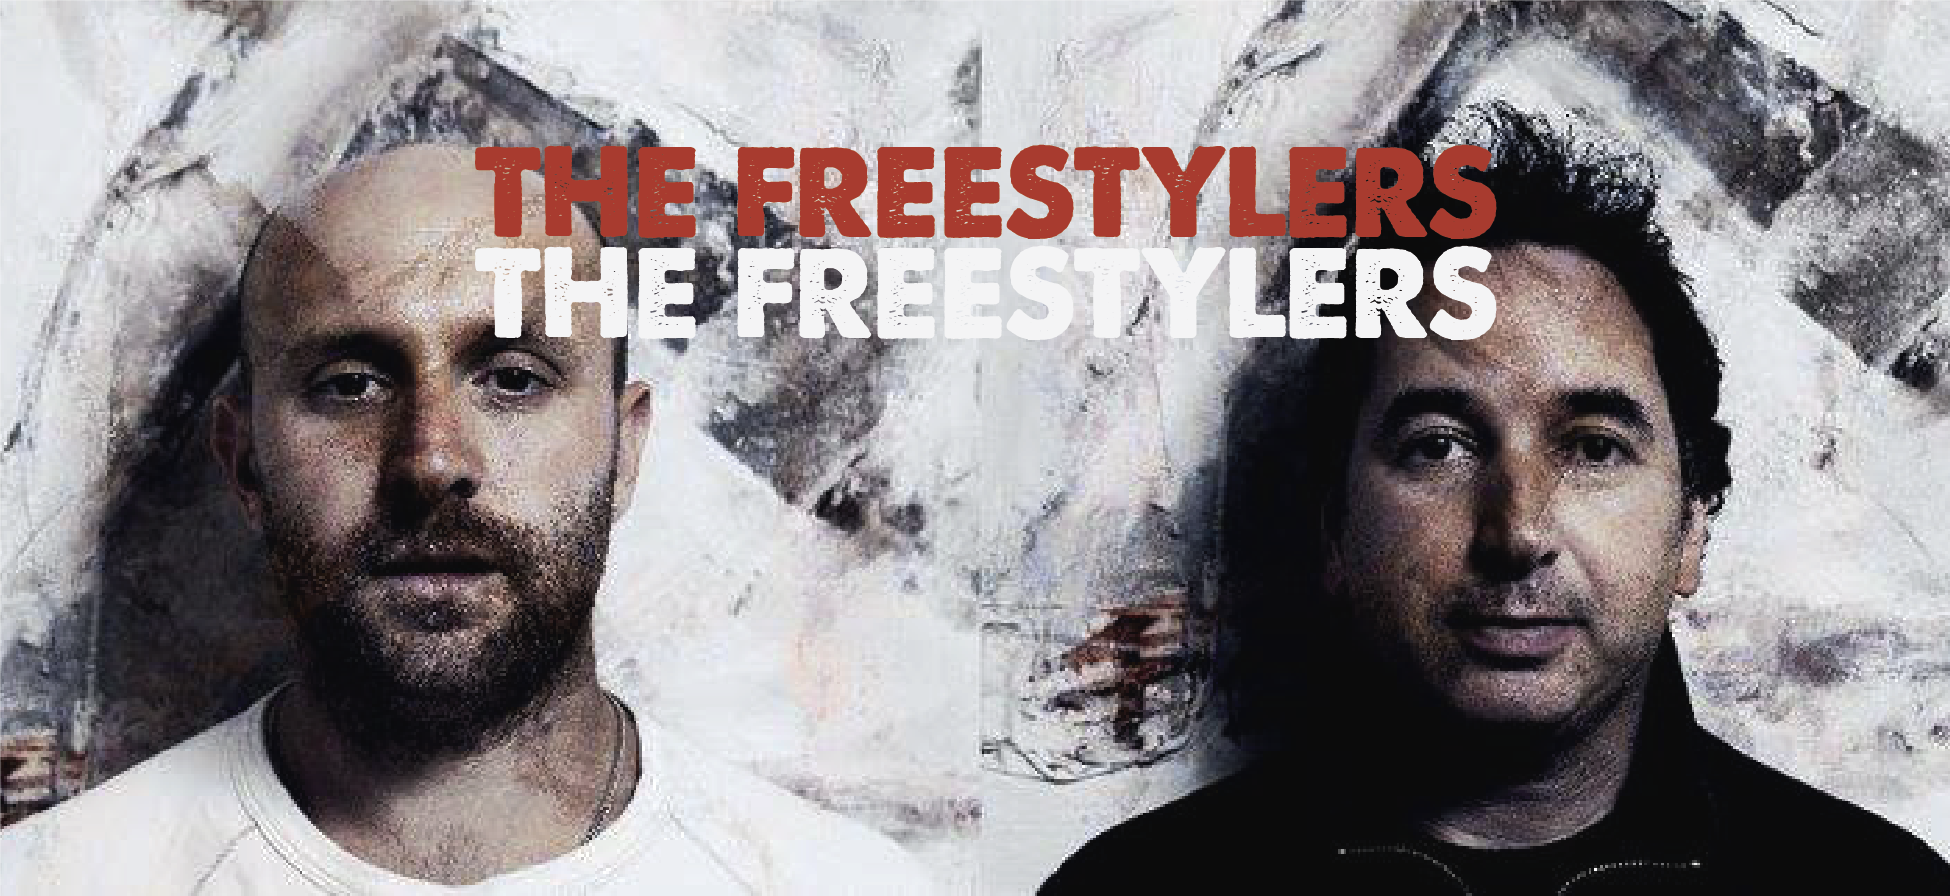 Profile: FREESTYLERS